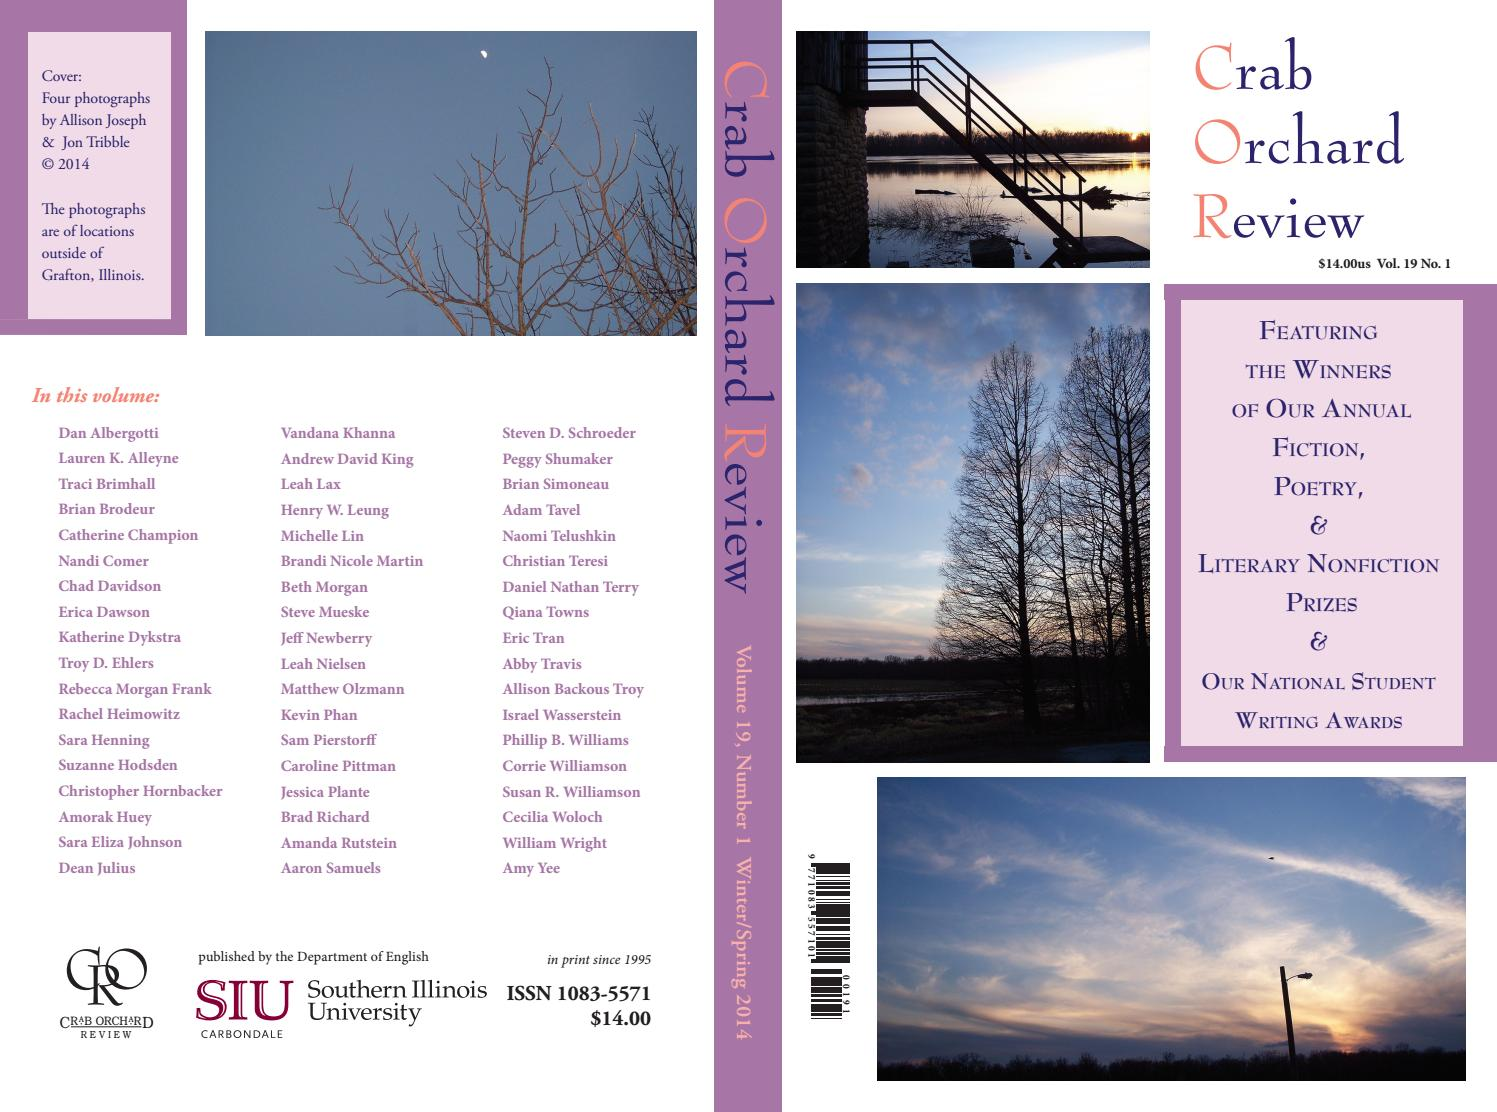 4c92ee02b Crab Orchard Review Vol 19 No 1 W/S 2014 by Crab Orchard Review - issuu